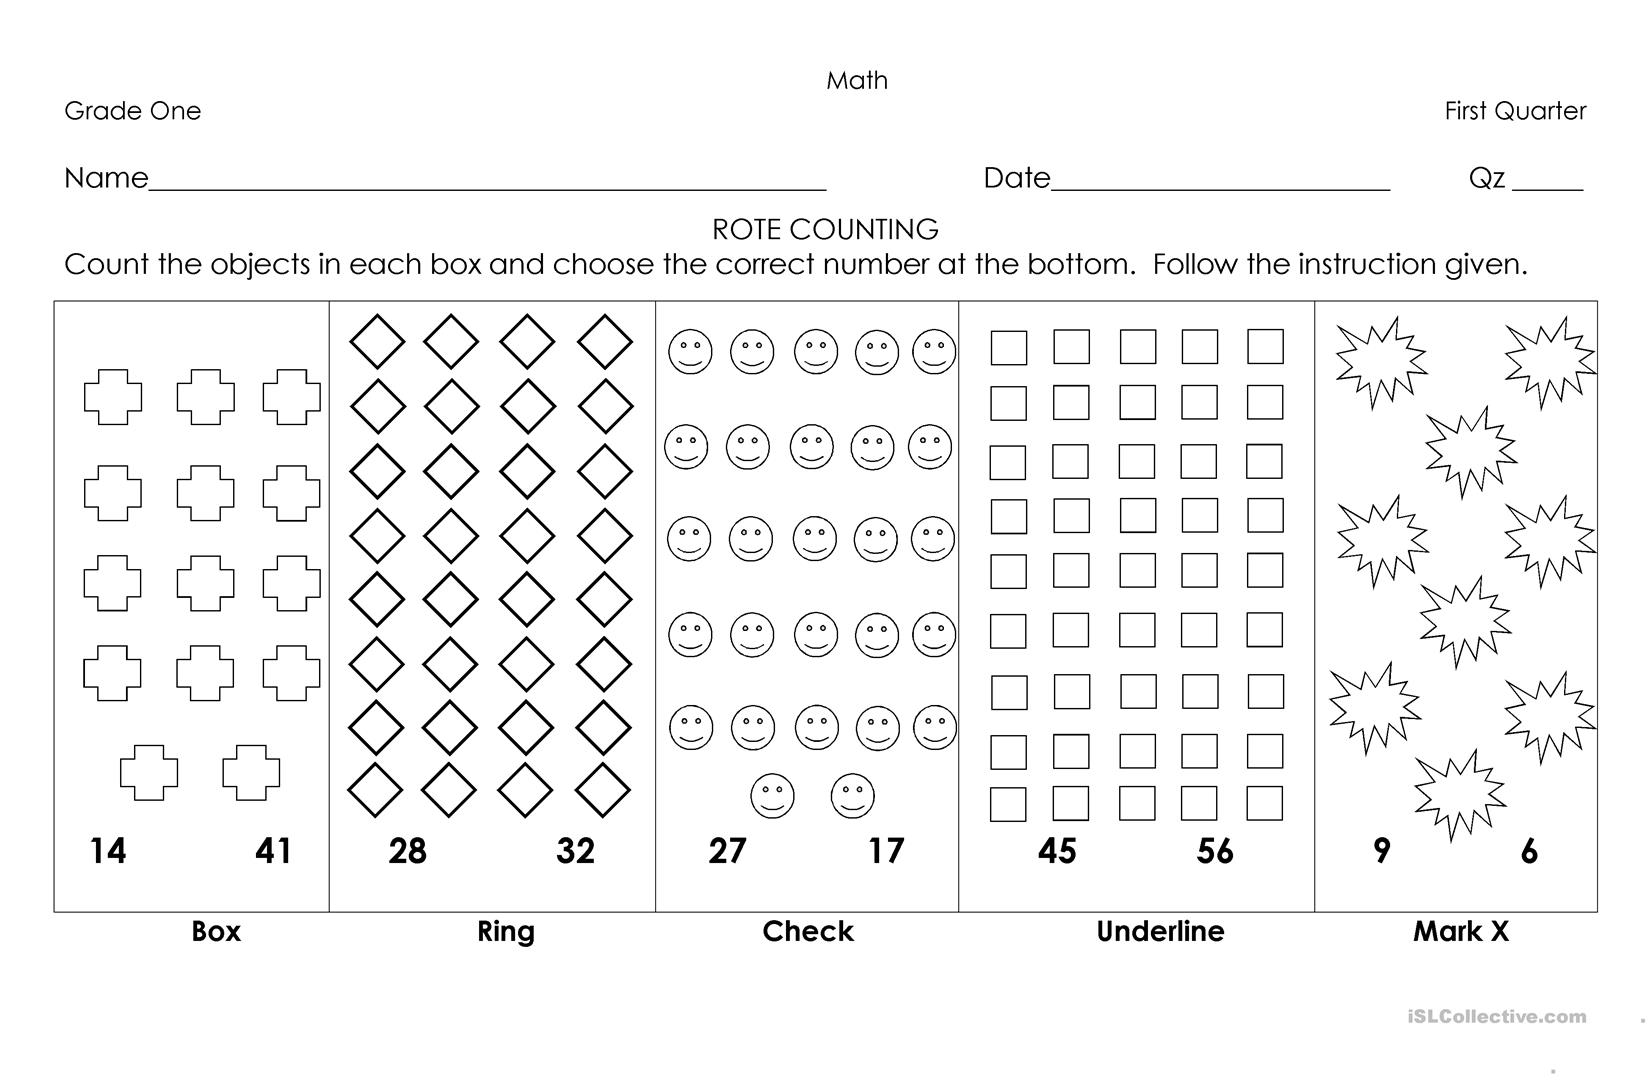 Rote Counting Worksheets - resultinfos